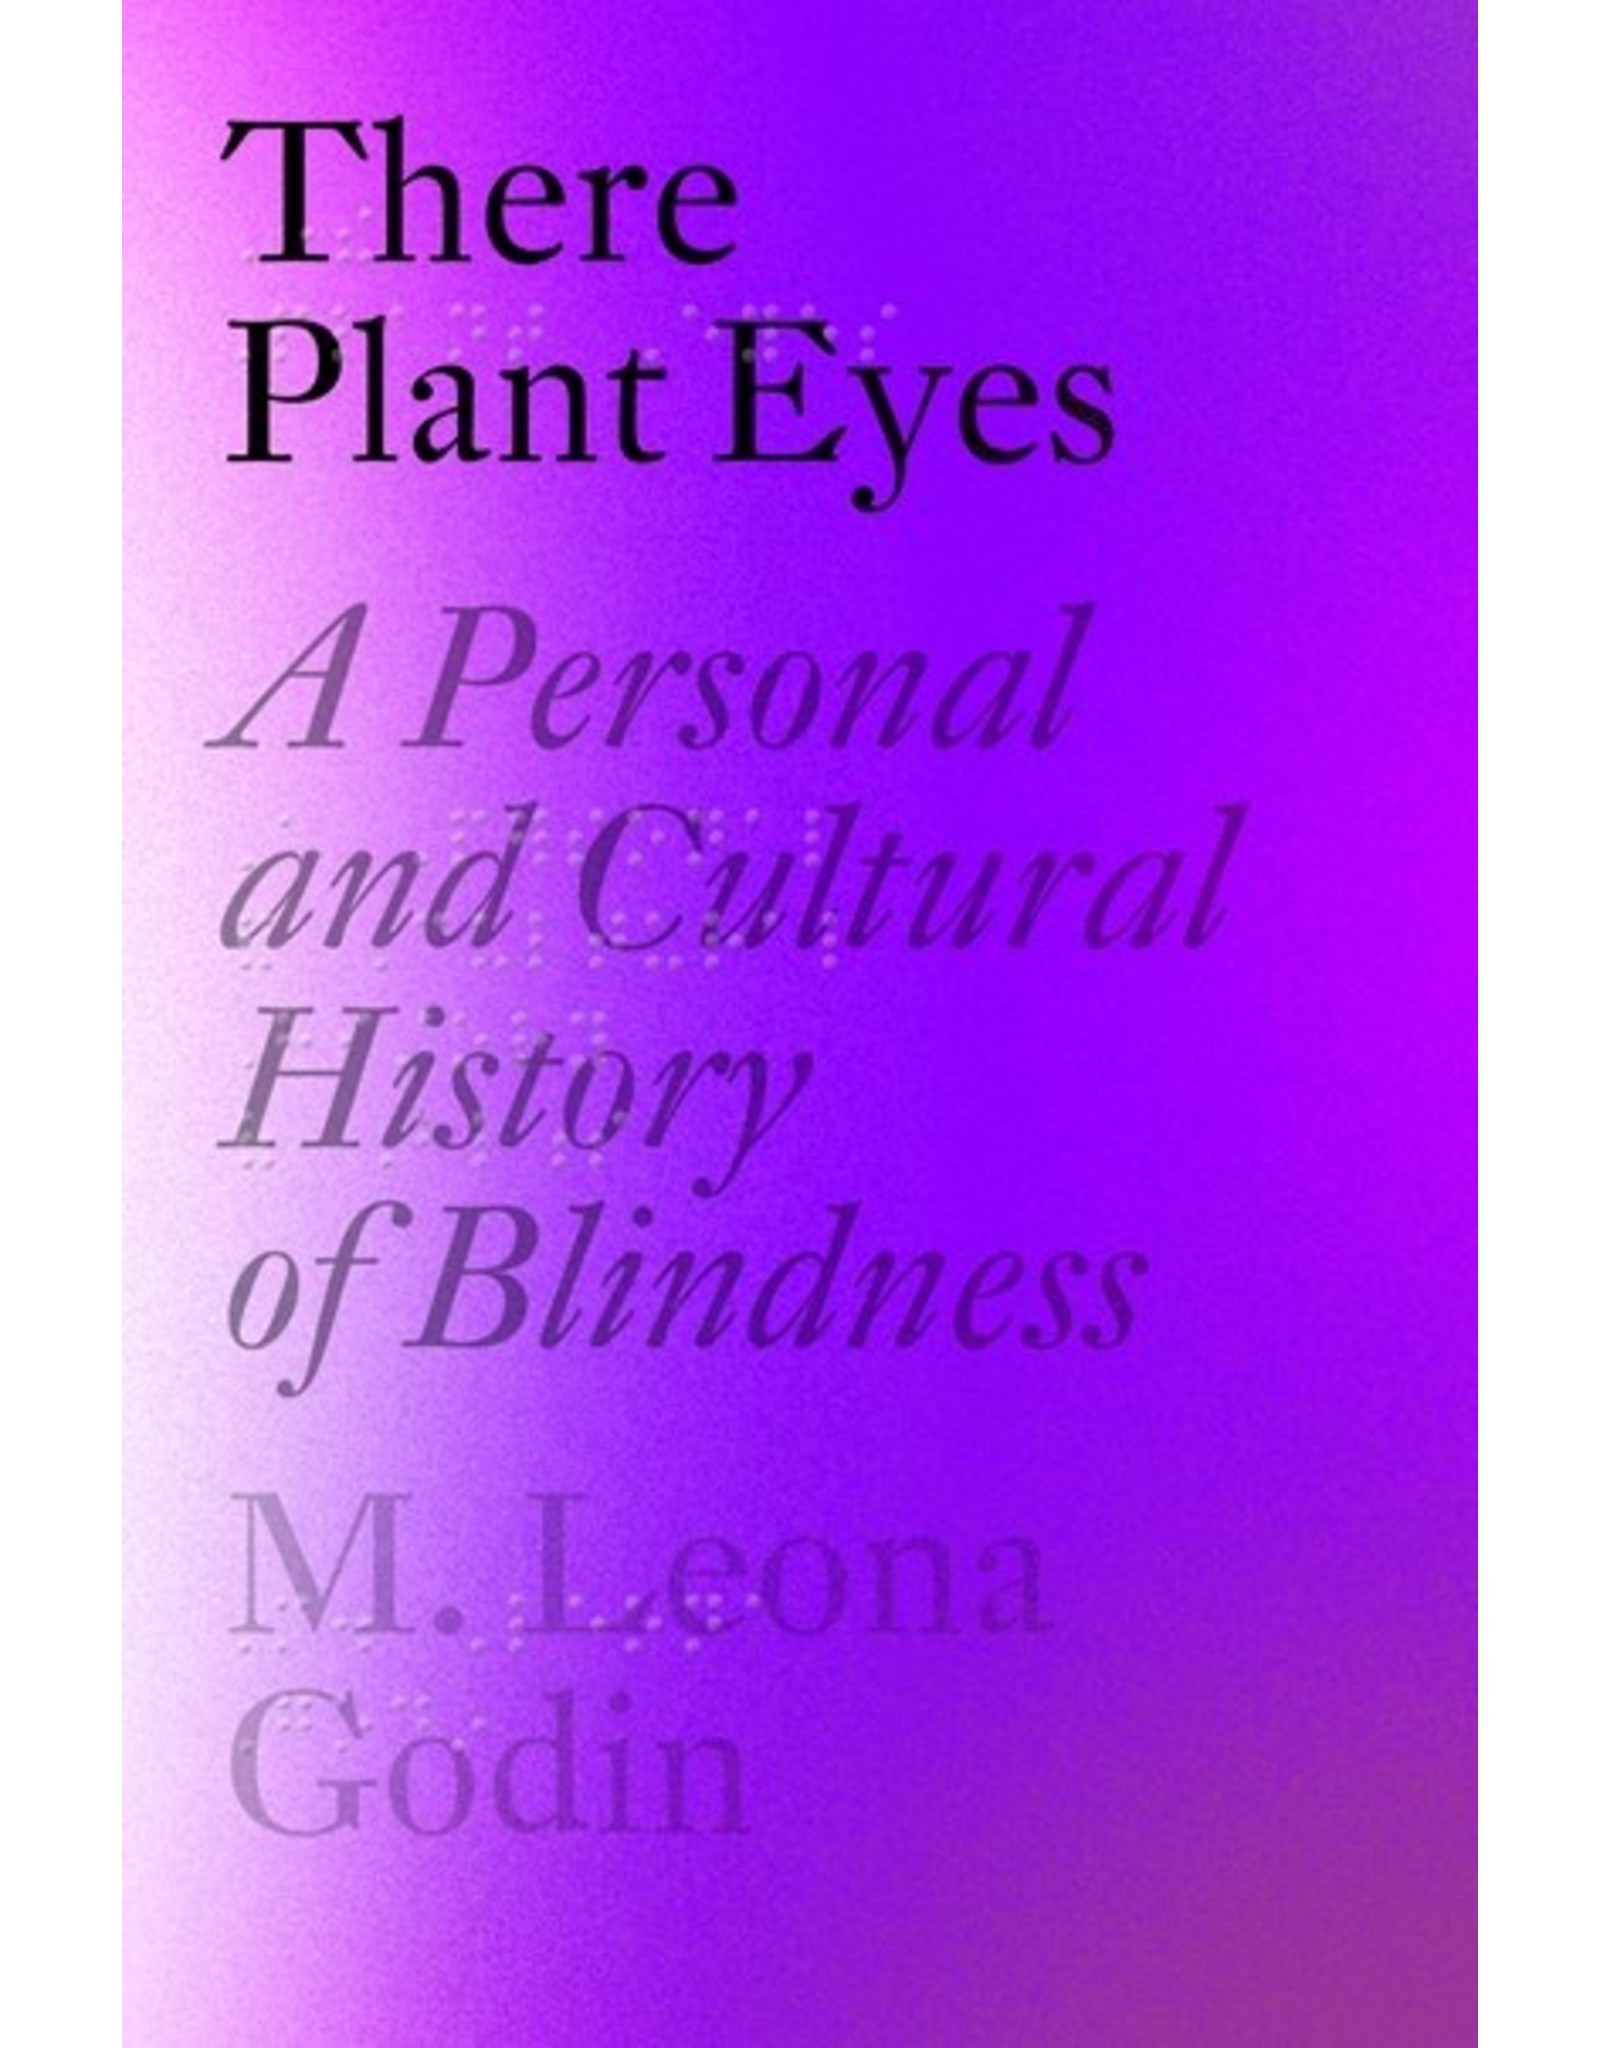 Books There Plant Eyes : A Personal and Cultural History of Blindness  by  M. Leona Godin (DRLC Book Club)